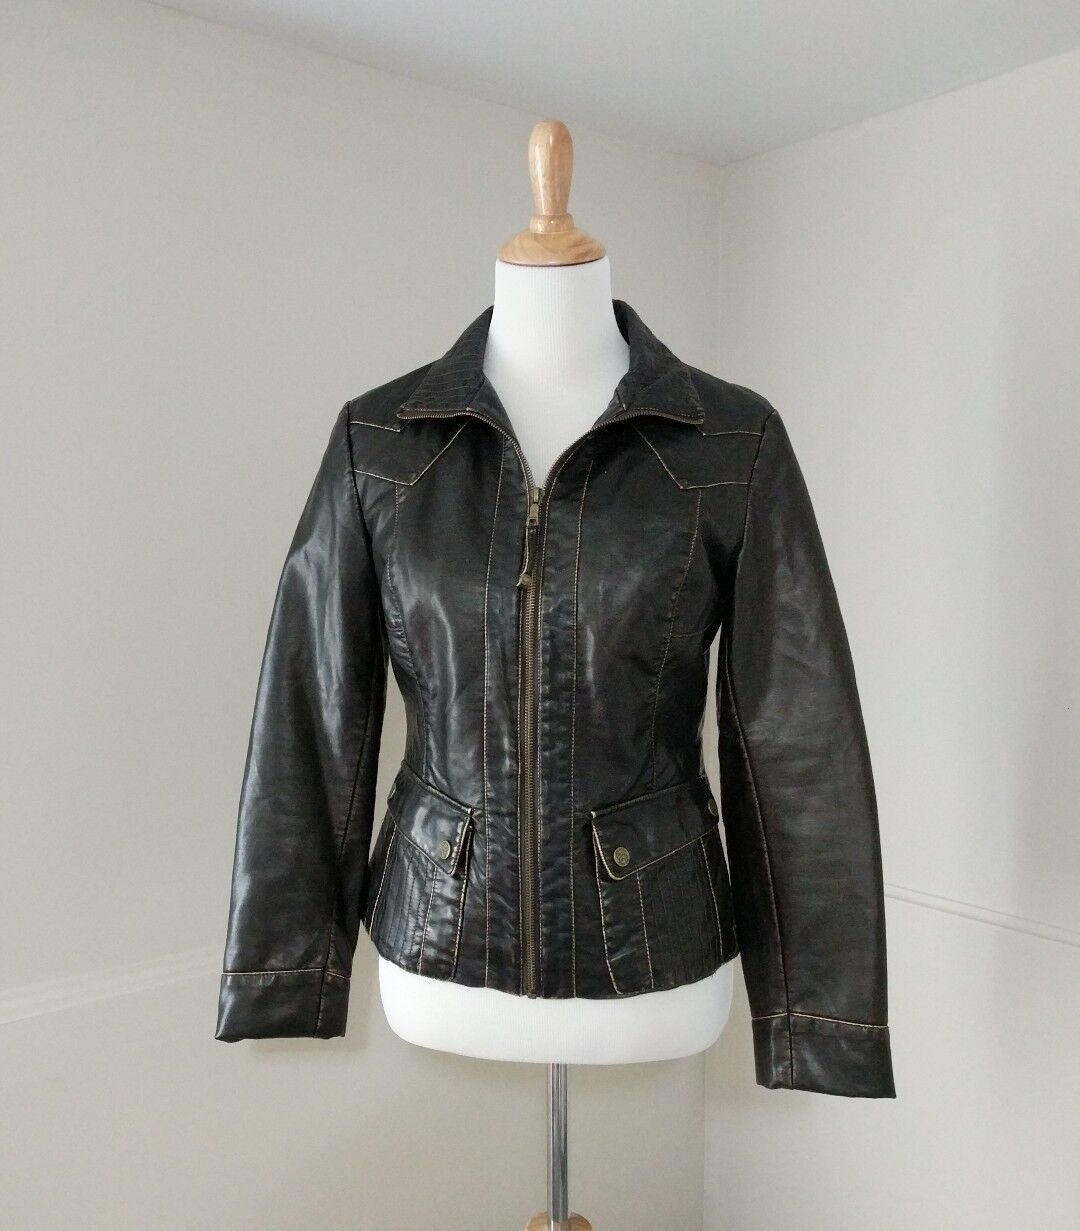 Big Chill Vintage Small Jacket Coat Vegan Leather Brown Bomber Motorcycle